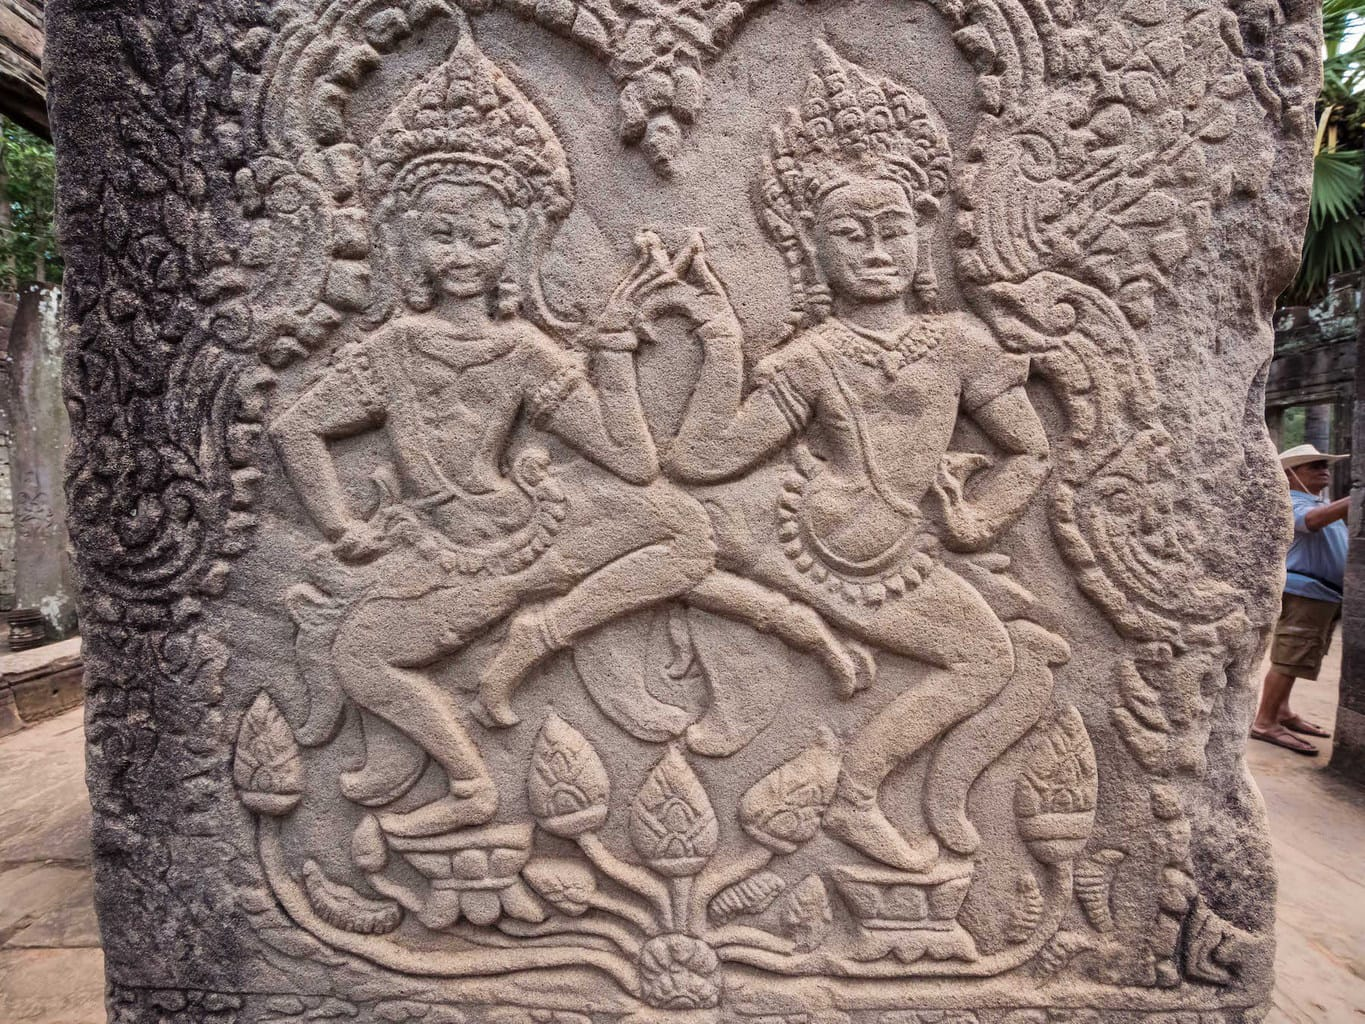 Apsara dancers on the bas relief